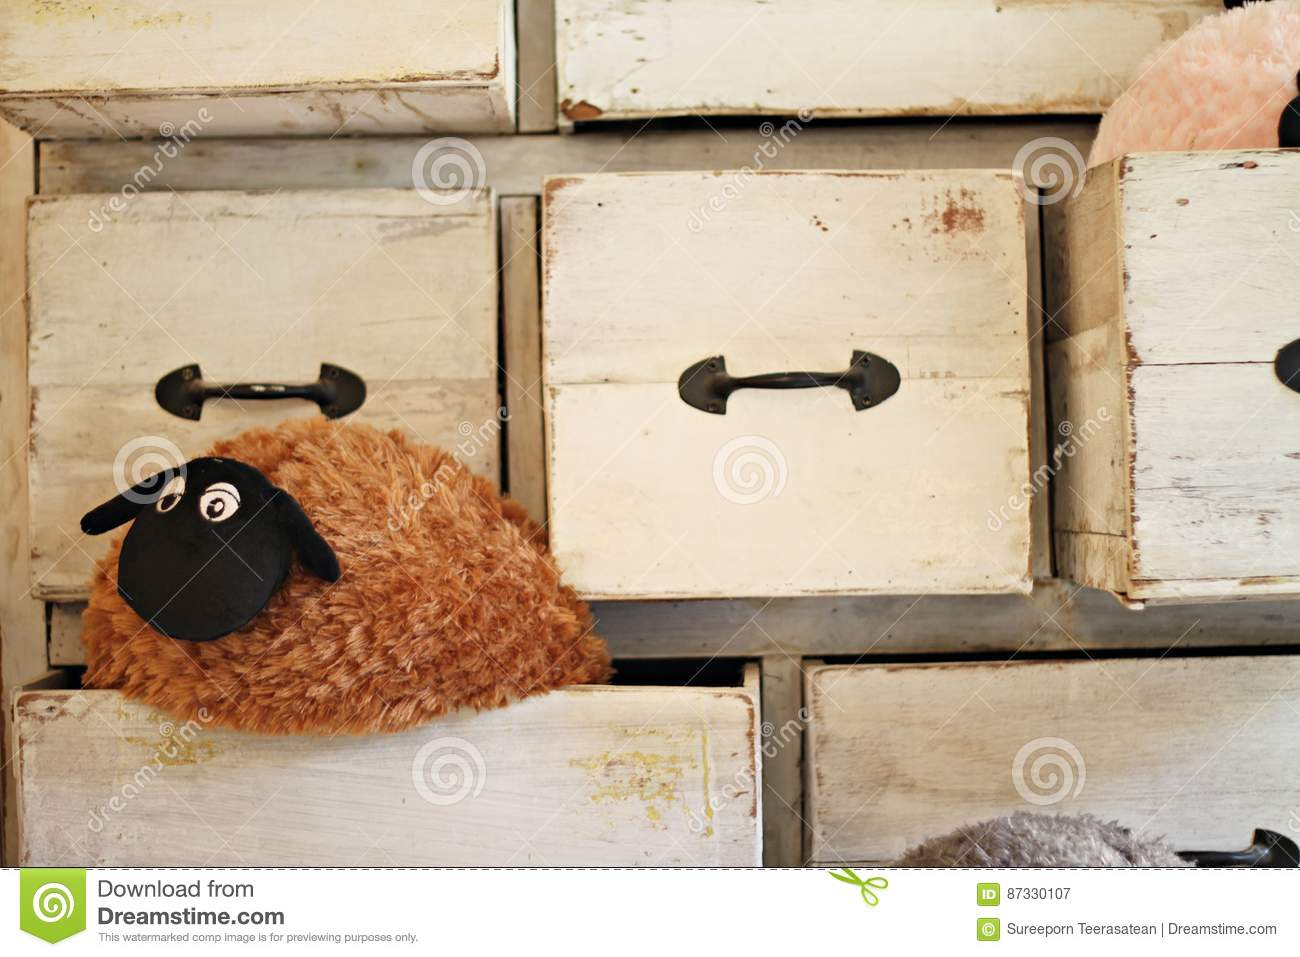 Lonely sheep doll in the drawer